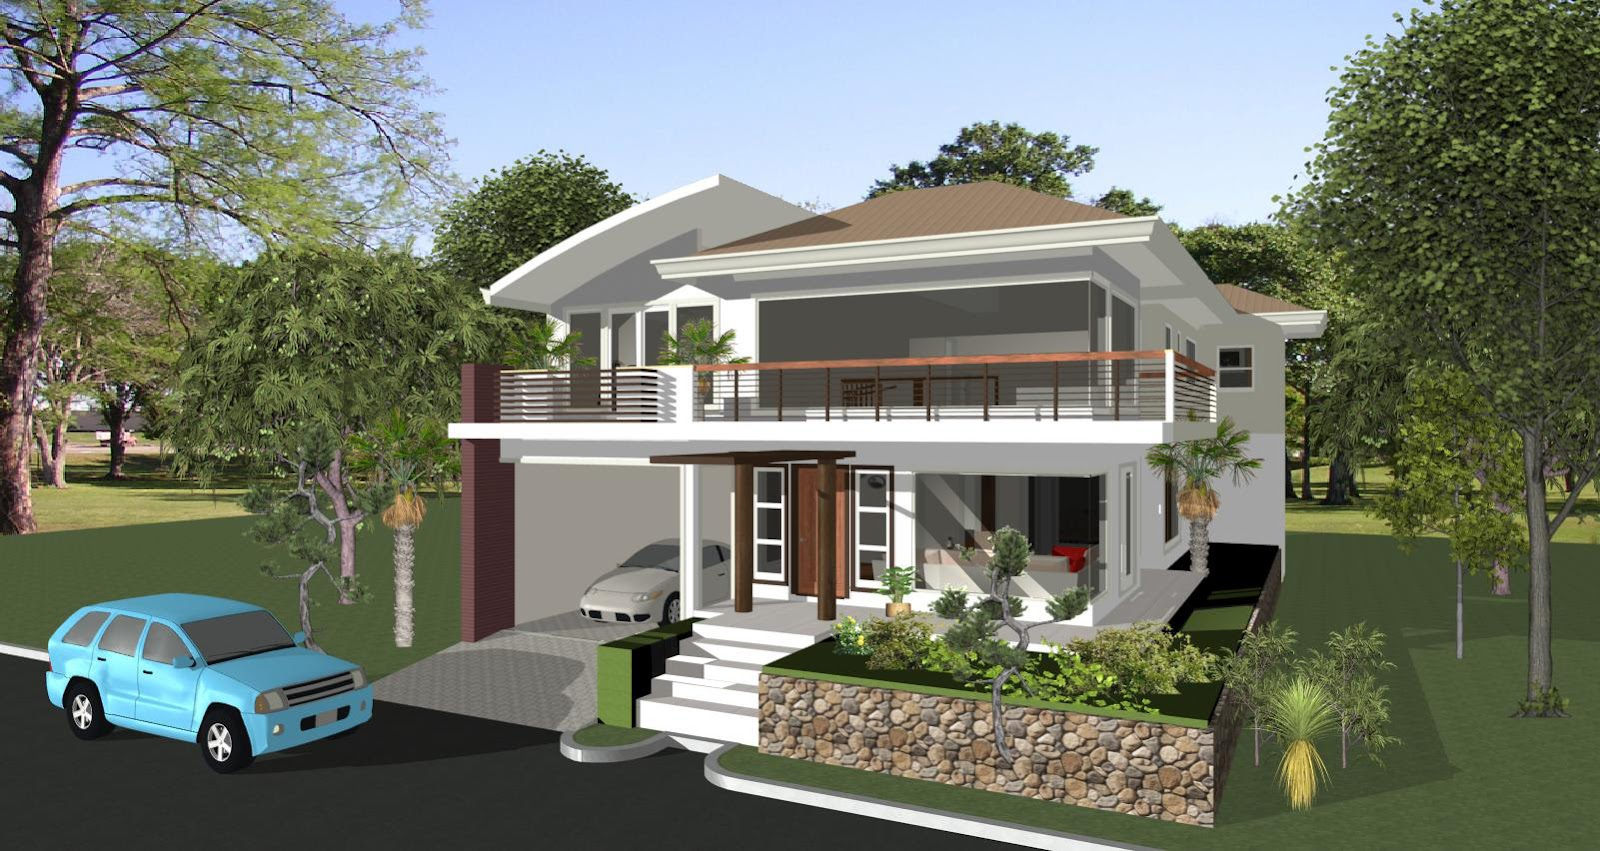 House designs in the philippines in iloilo by erecre group for House design philippines